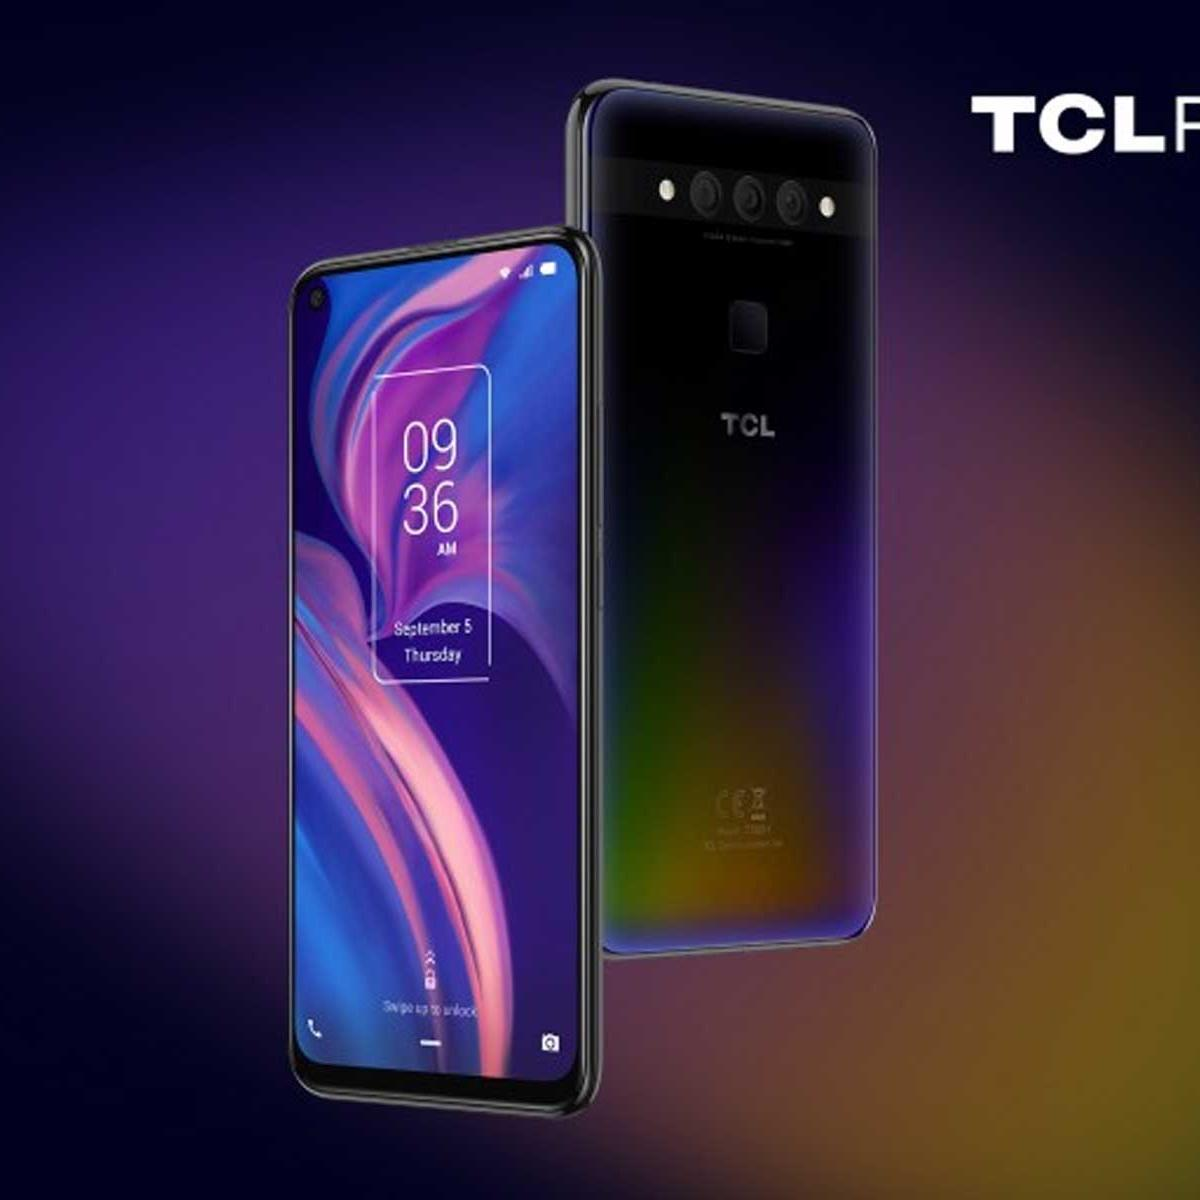 TCL Impresses With Plex, Its First Branded Smartphone That